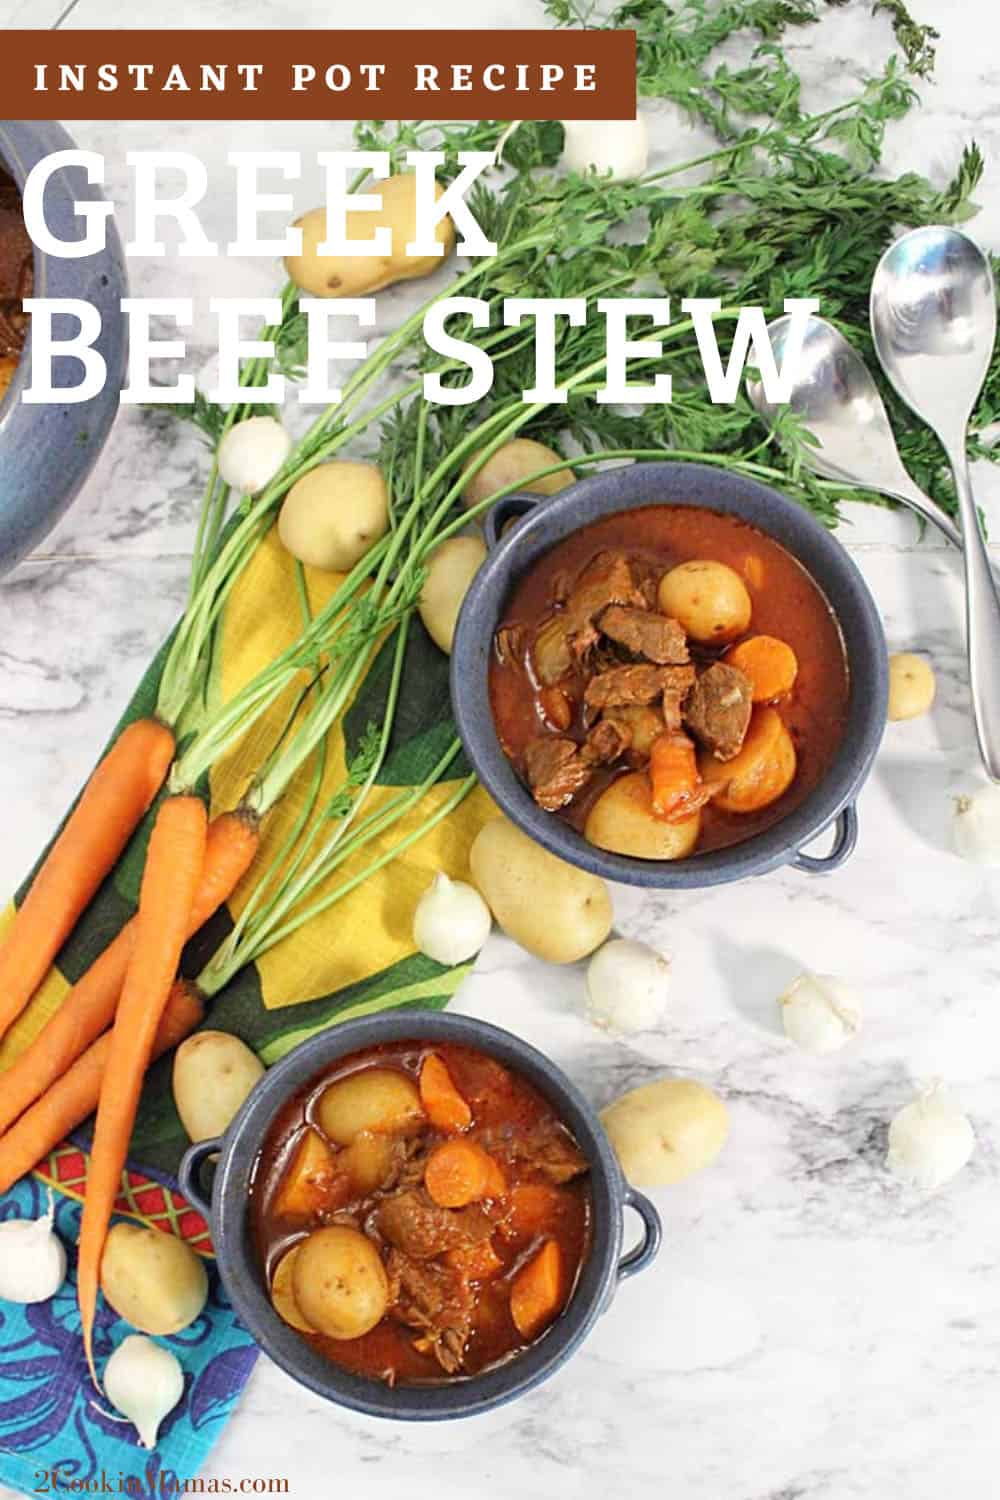 Instant Pot Greek Beef Stew